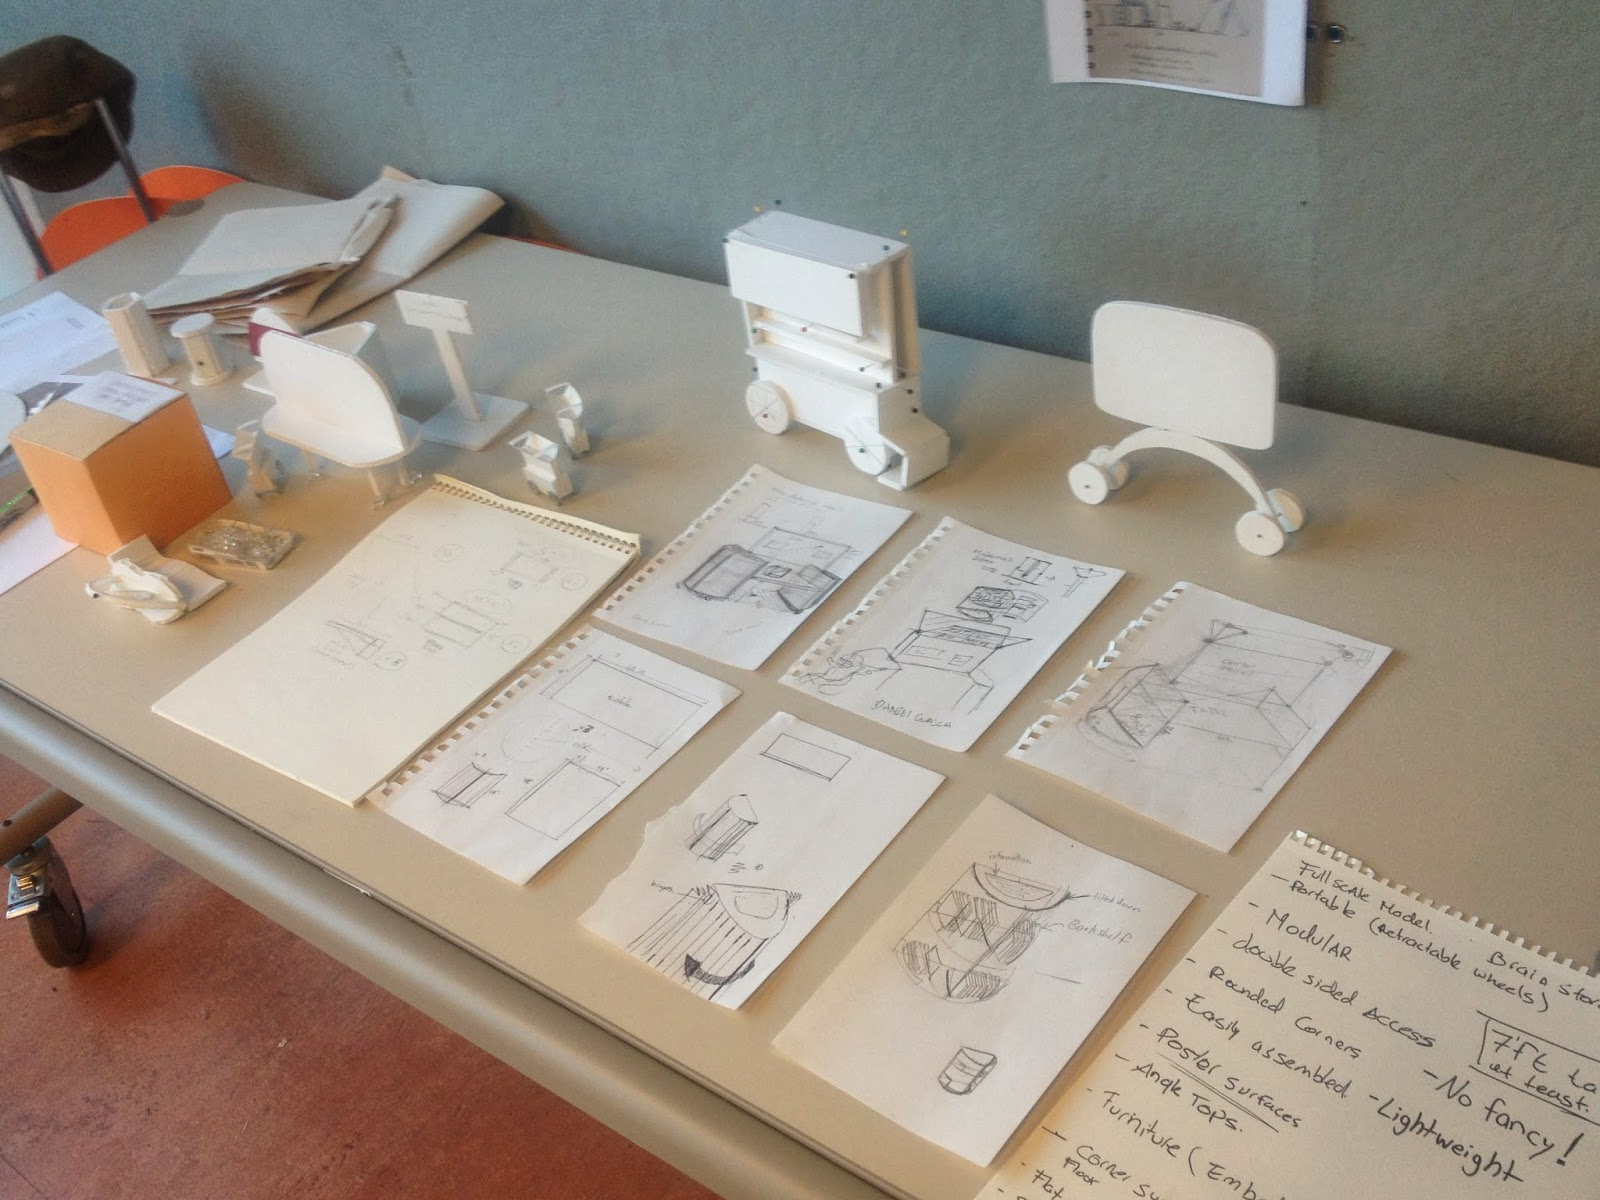 A table with several mockup sketches ordered together with foam core model mockups alongside the pages.